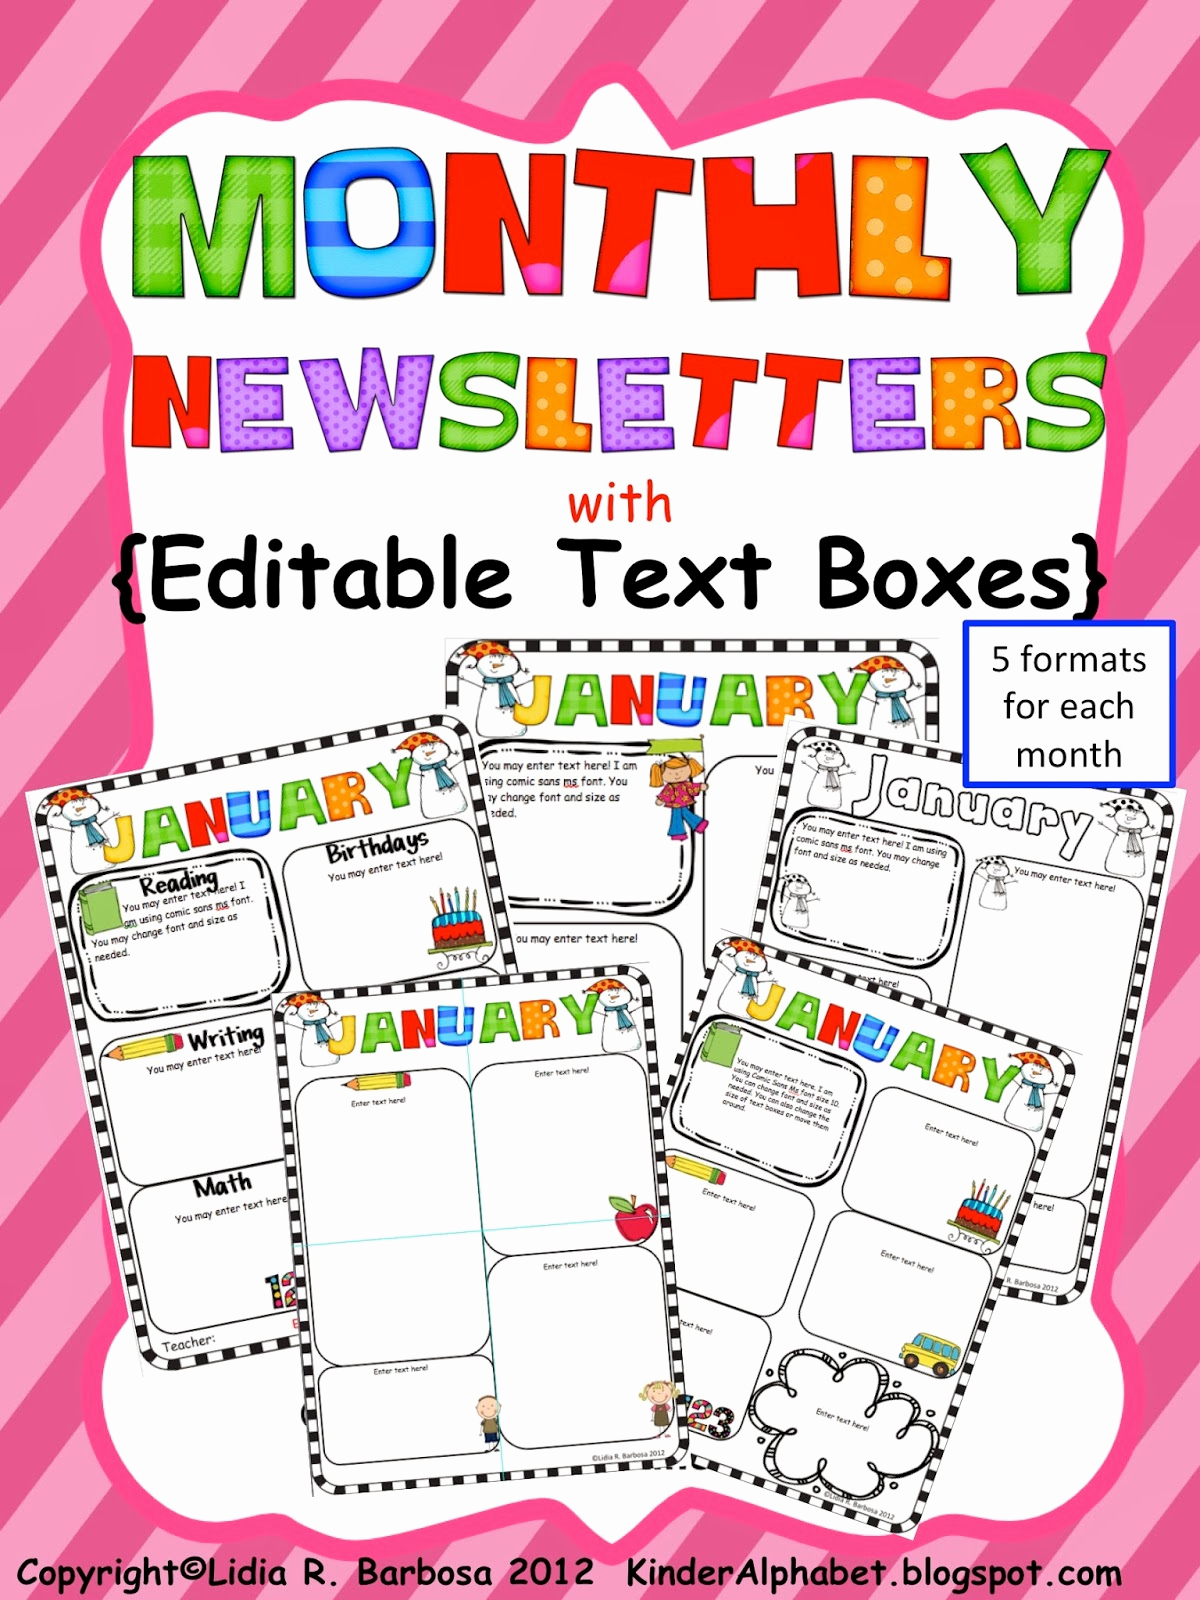 Free Editable Newsletter Templates New Kinder Alphabet — Teacher Resources In English and Spanish